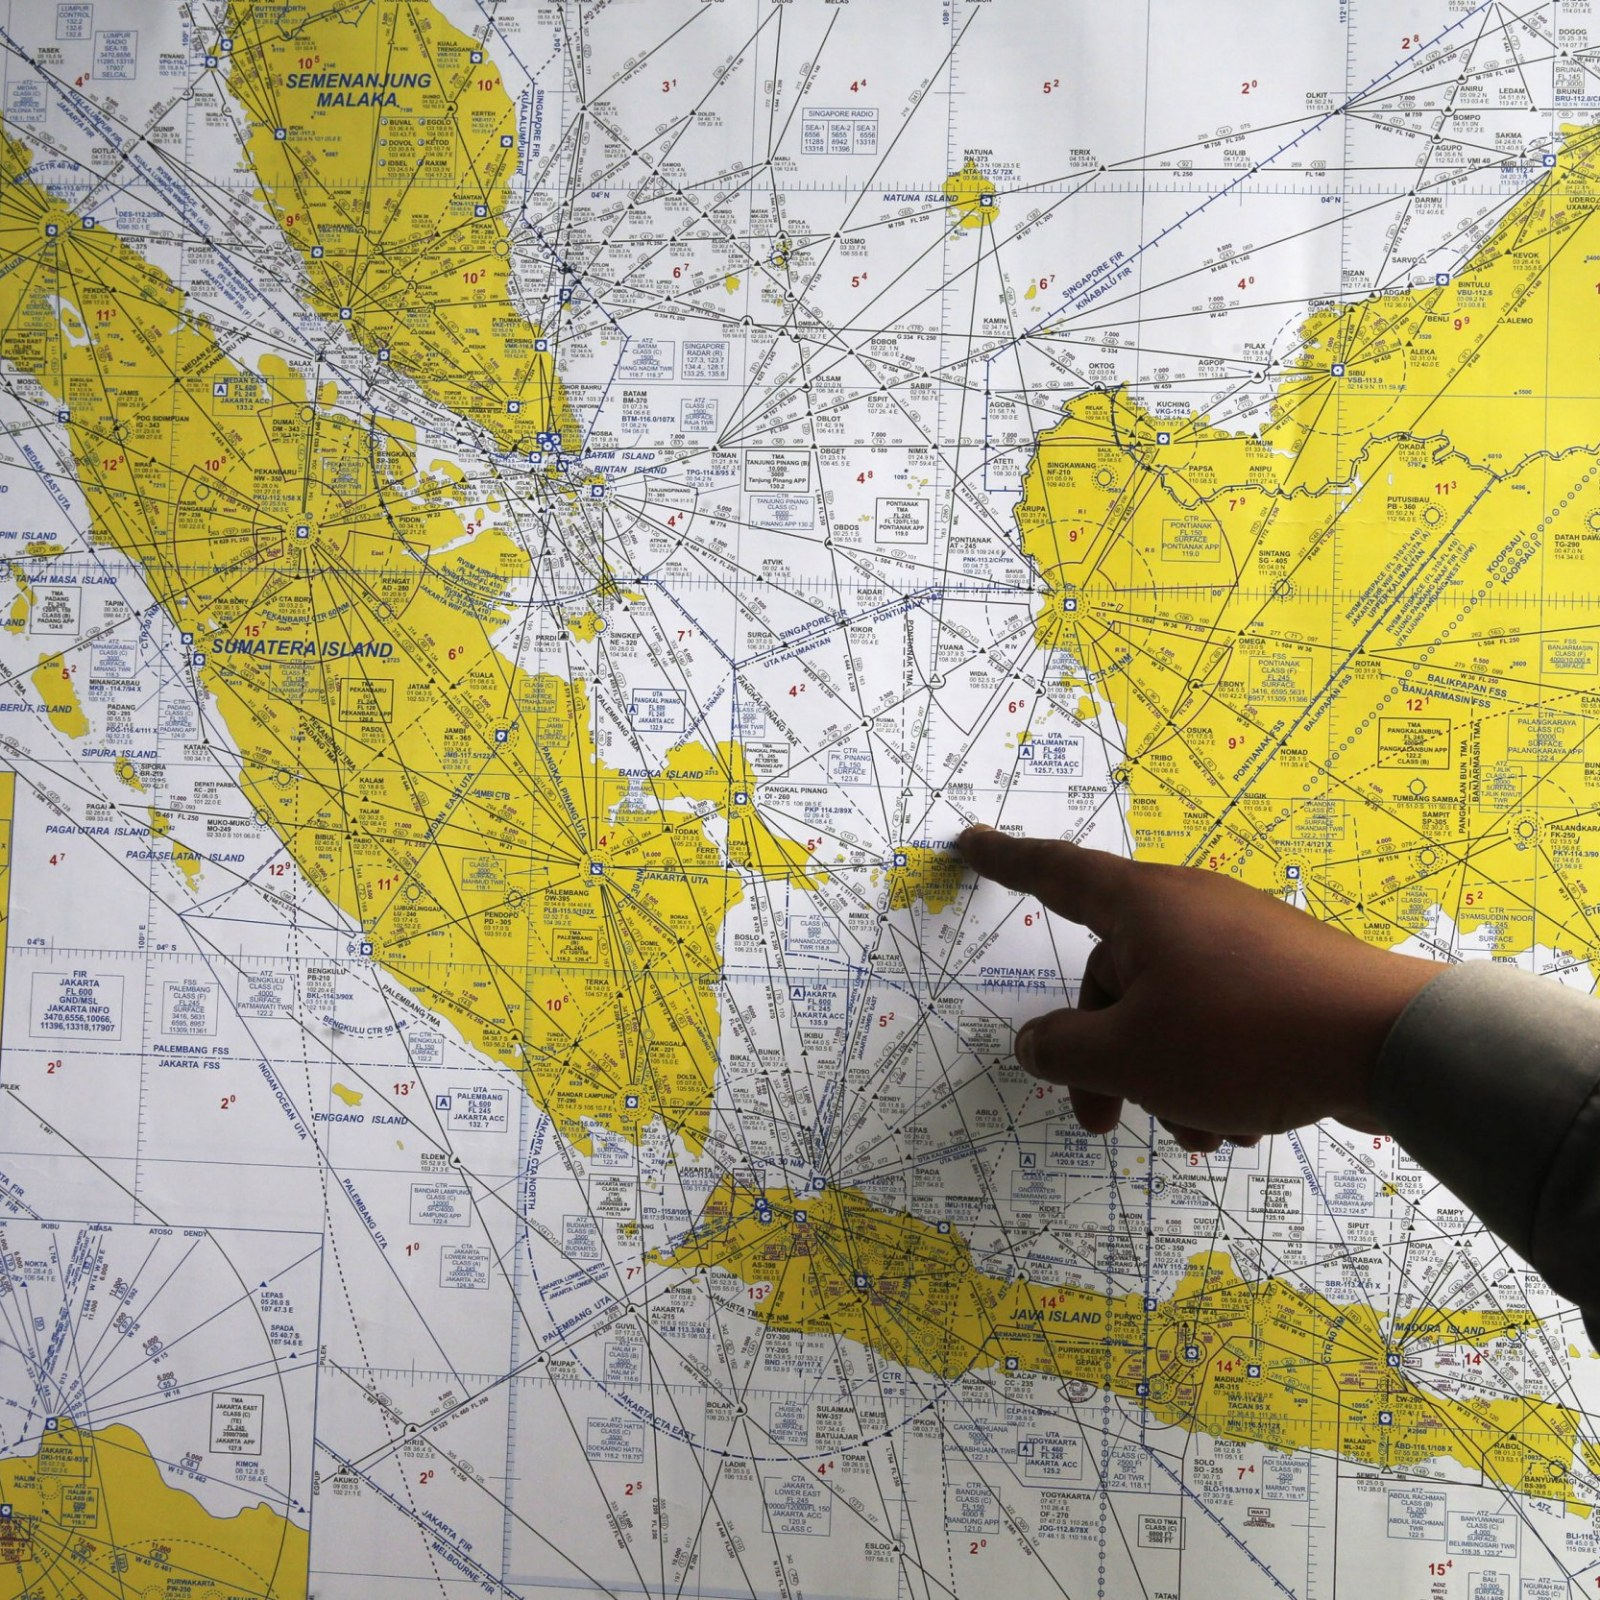 Could Lightning Have Downed Indonesia AirAsia Flight 8501?